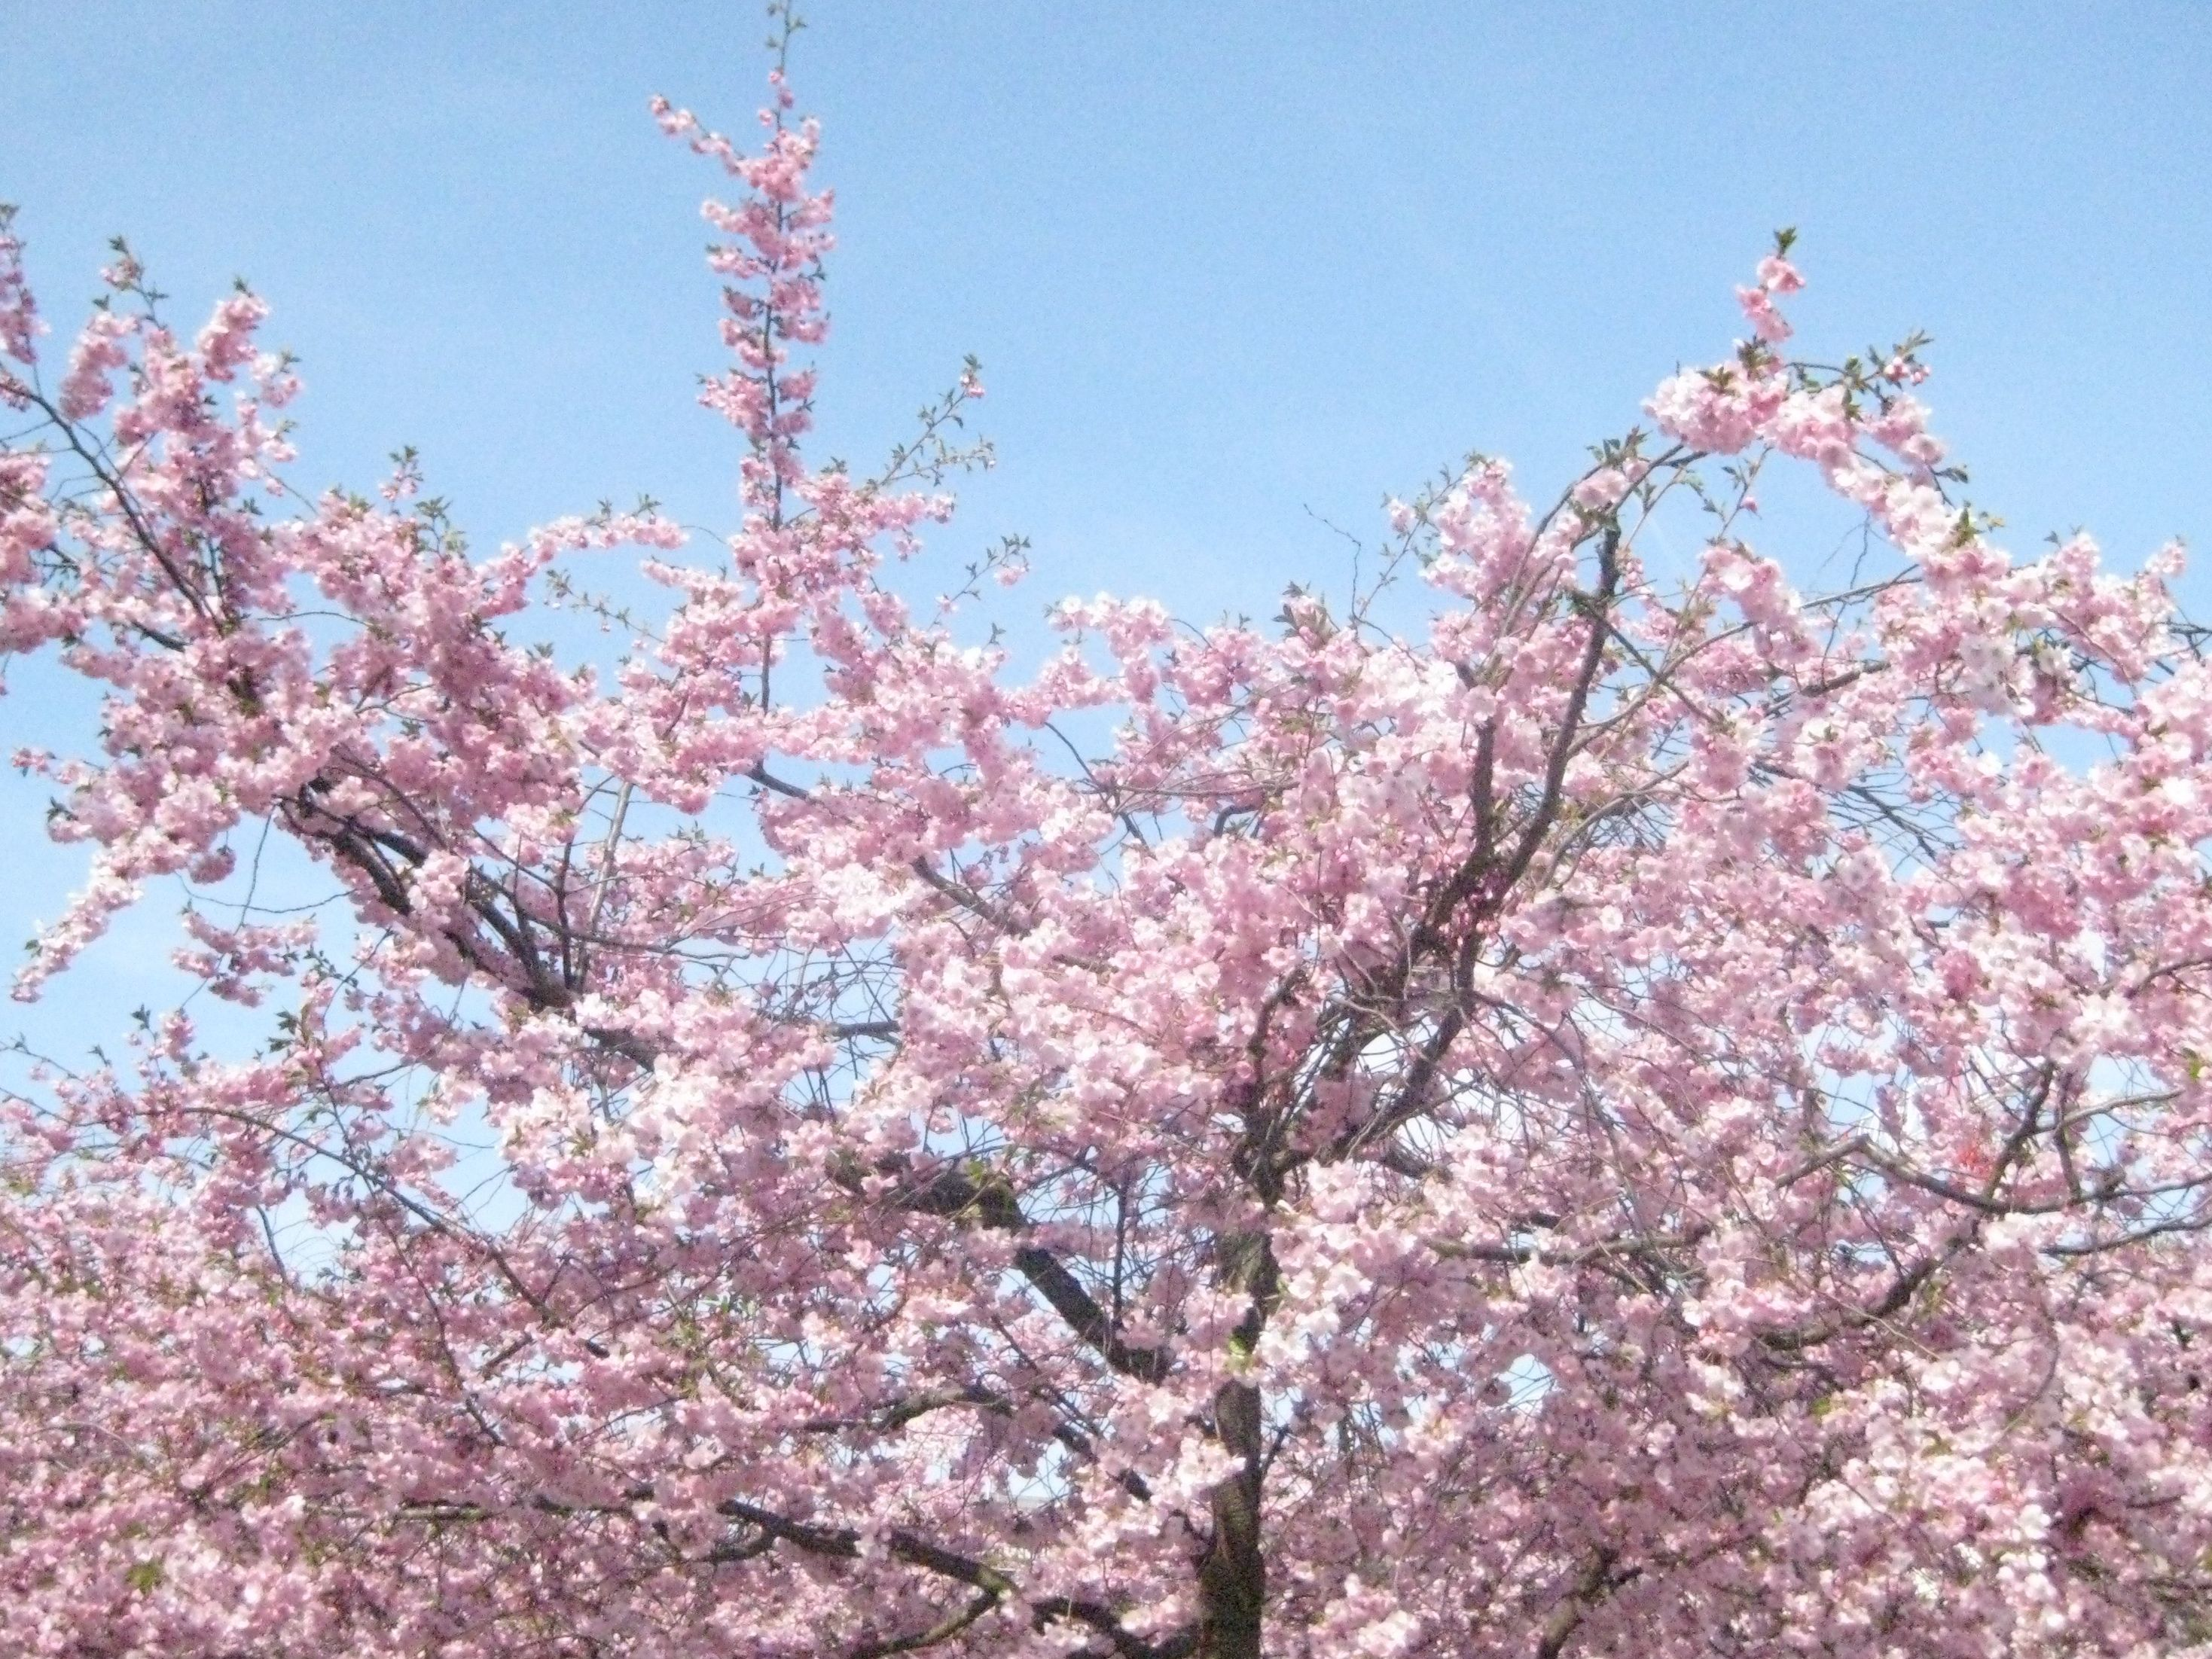 Cherry Blossom Happiness Yes Happiness Is A Cherry Blossom Tree In Full Bloom Cherry Blossom Tree Blossom Cherry Blossom